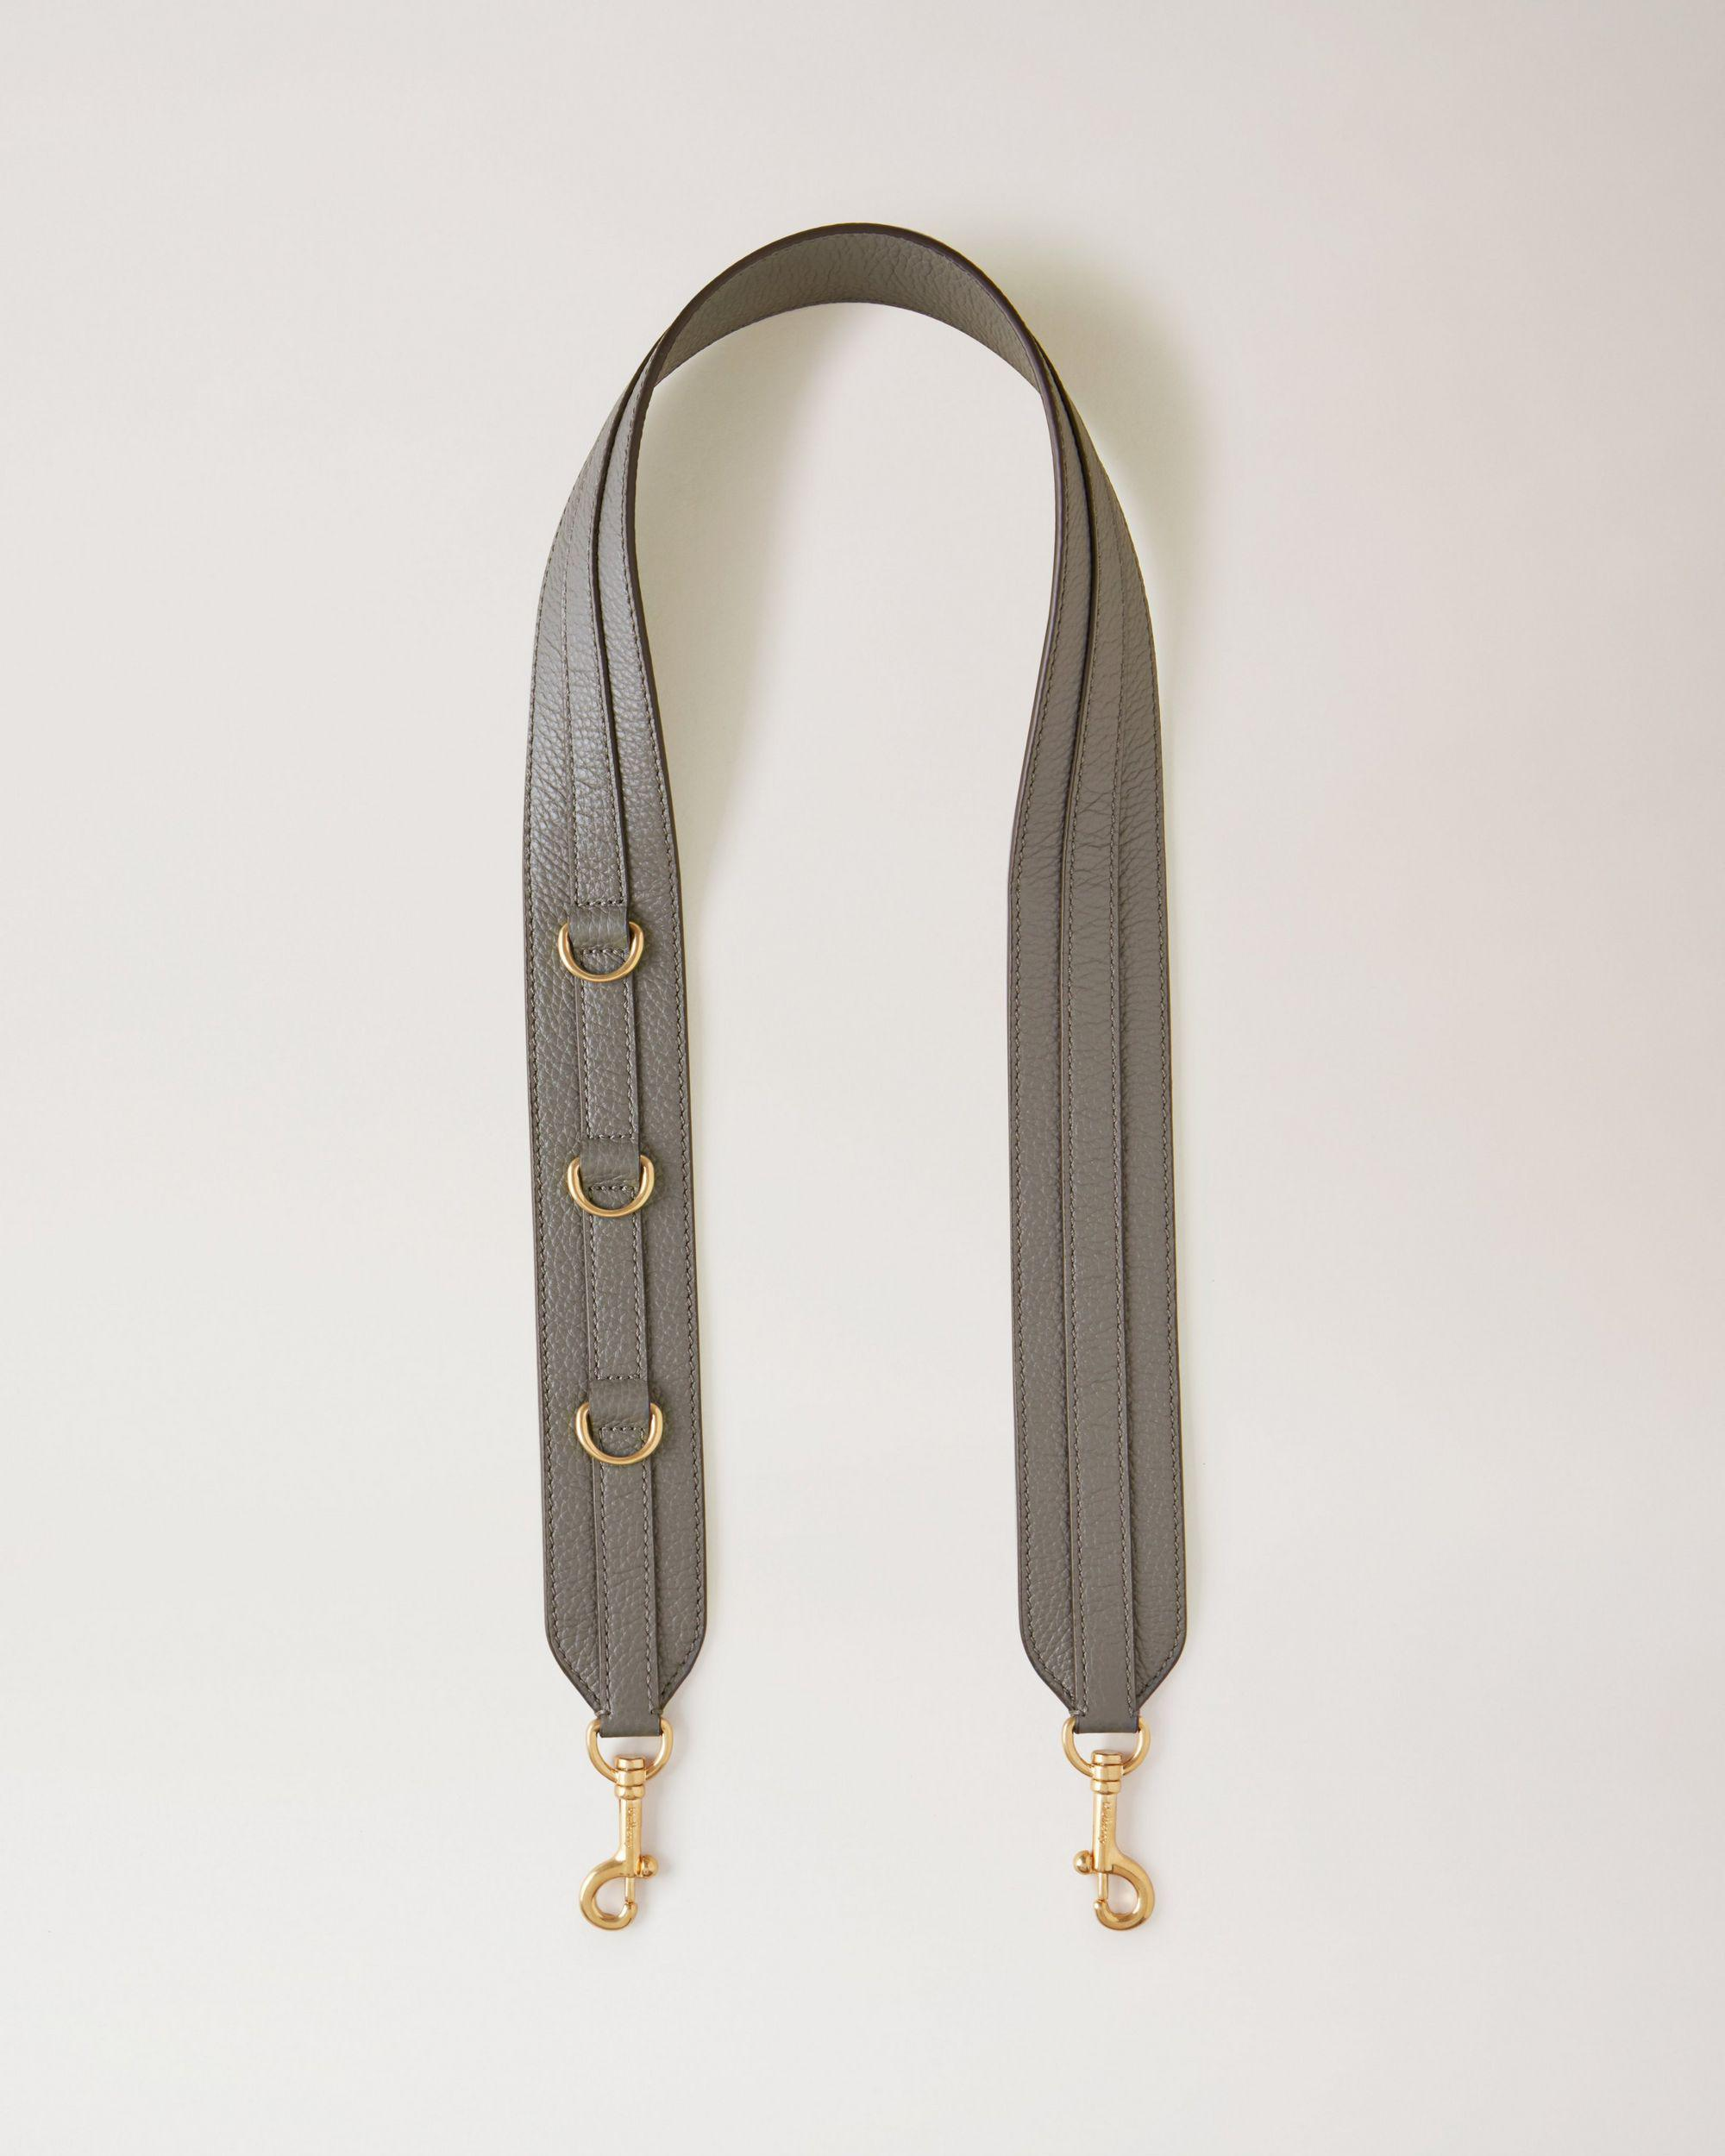 Strap for Personalisation